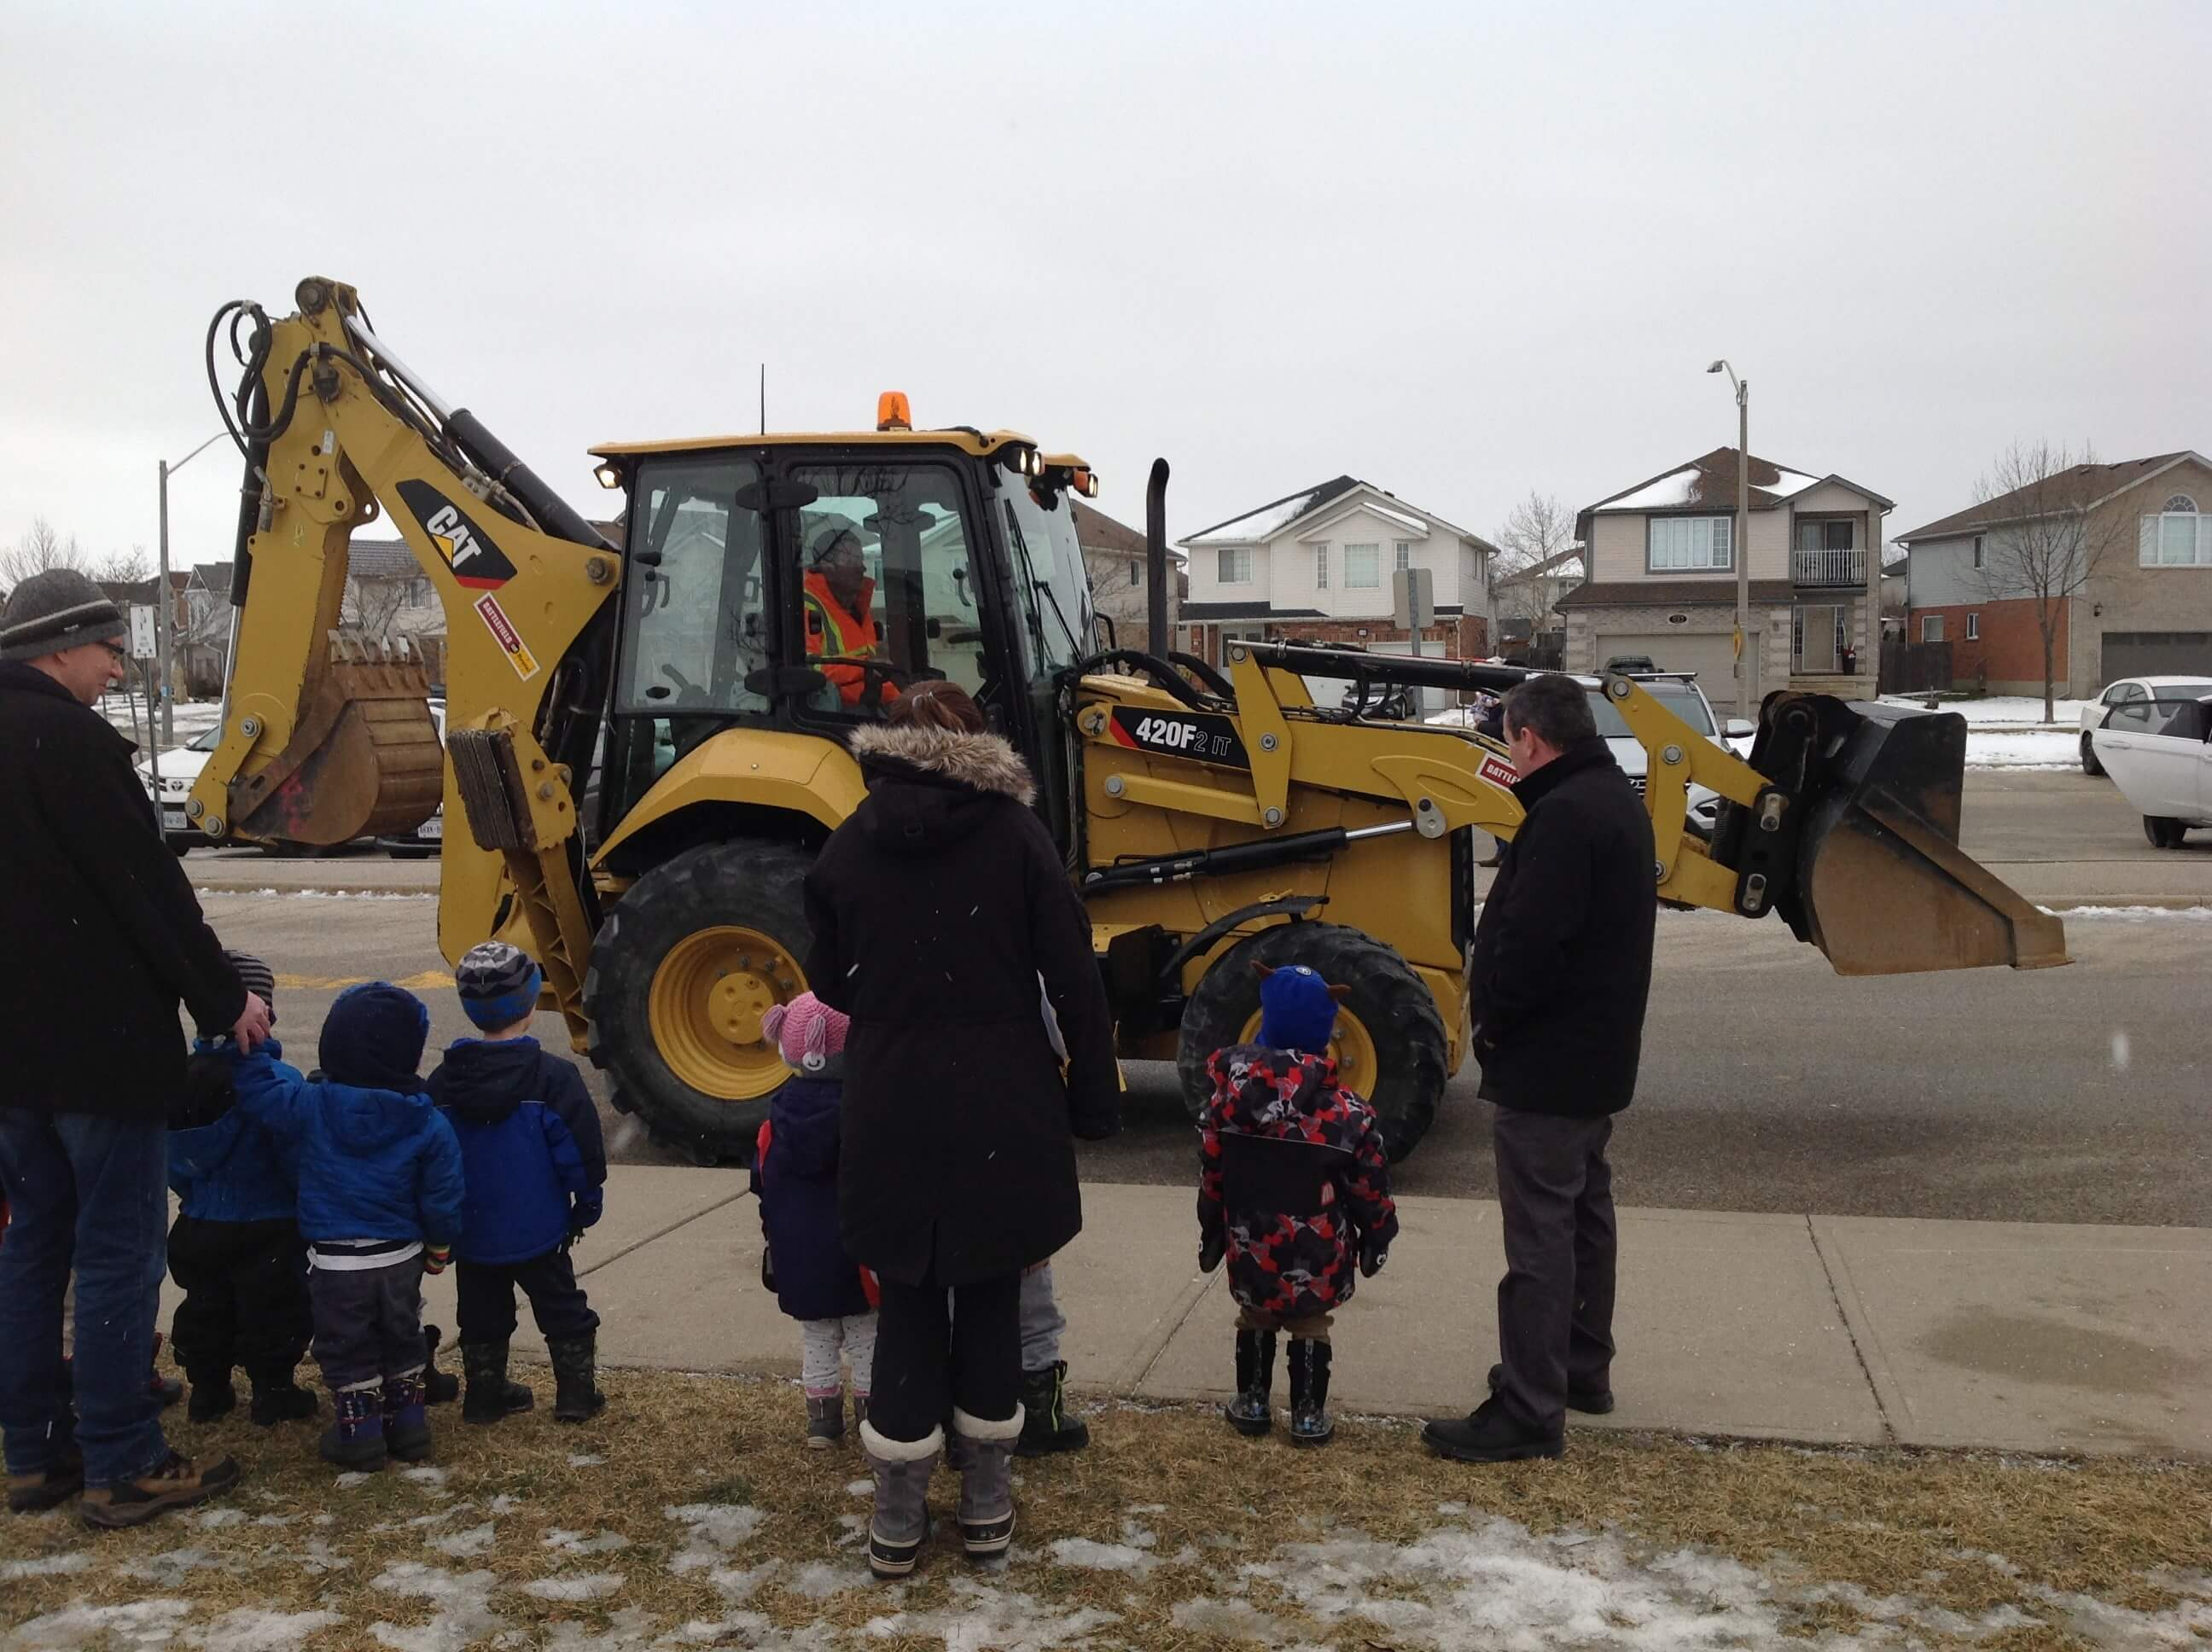 children watching a digger